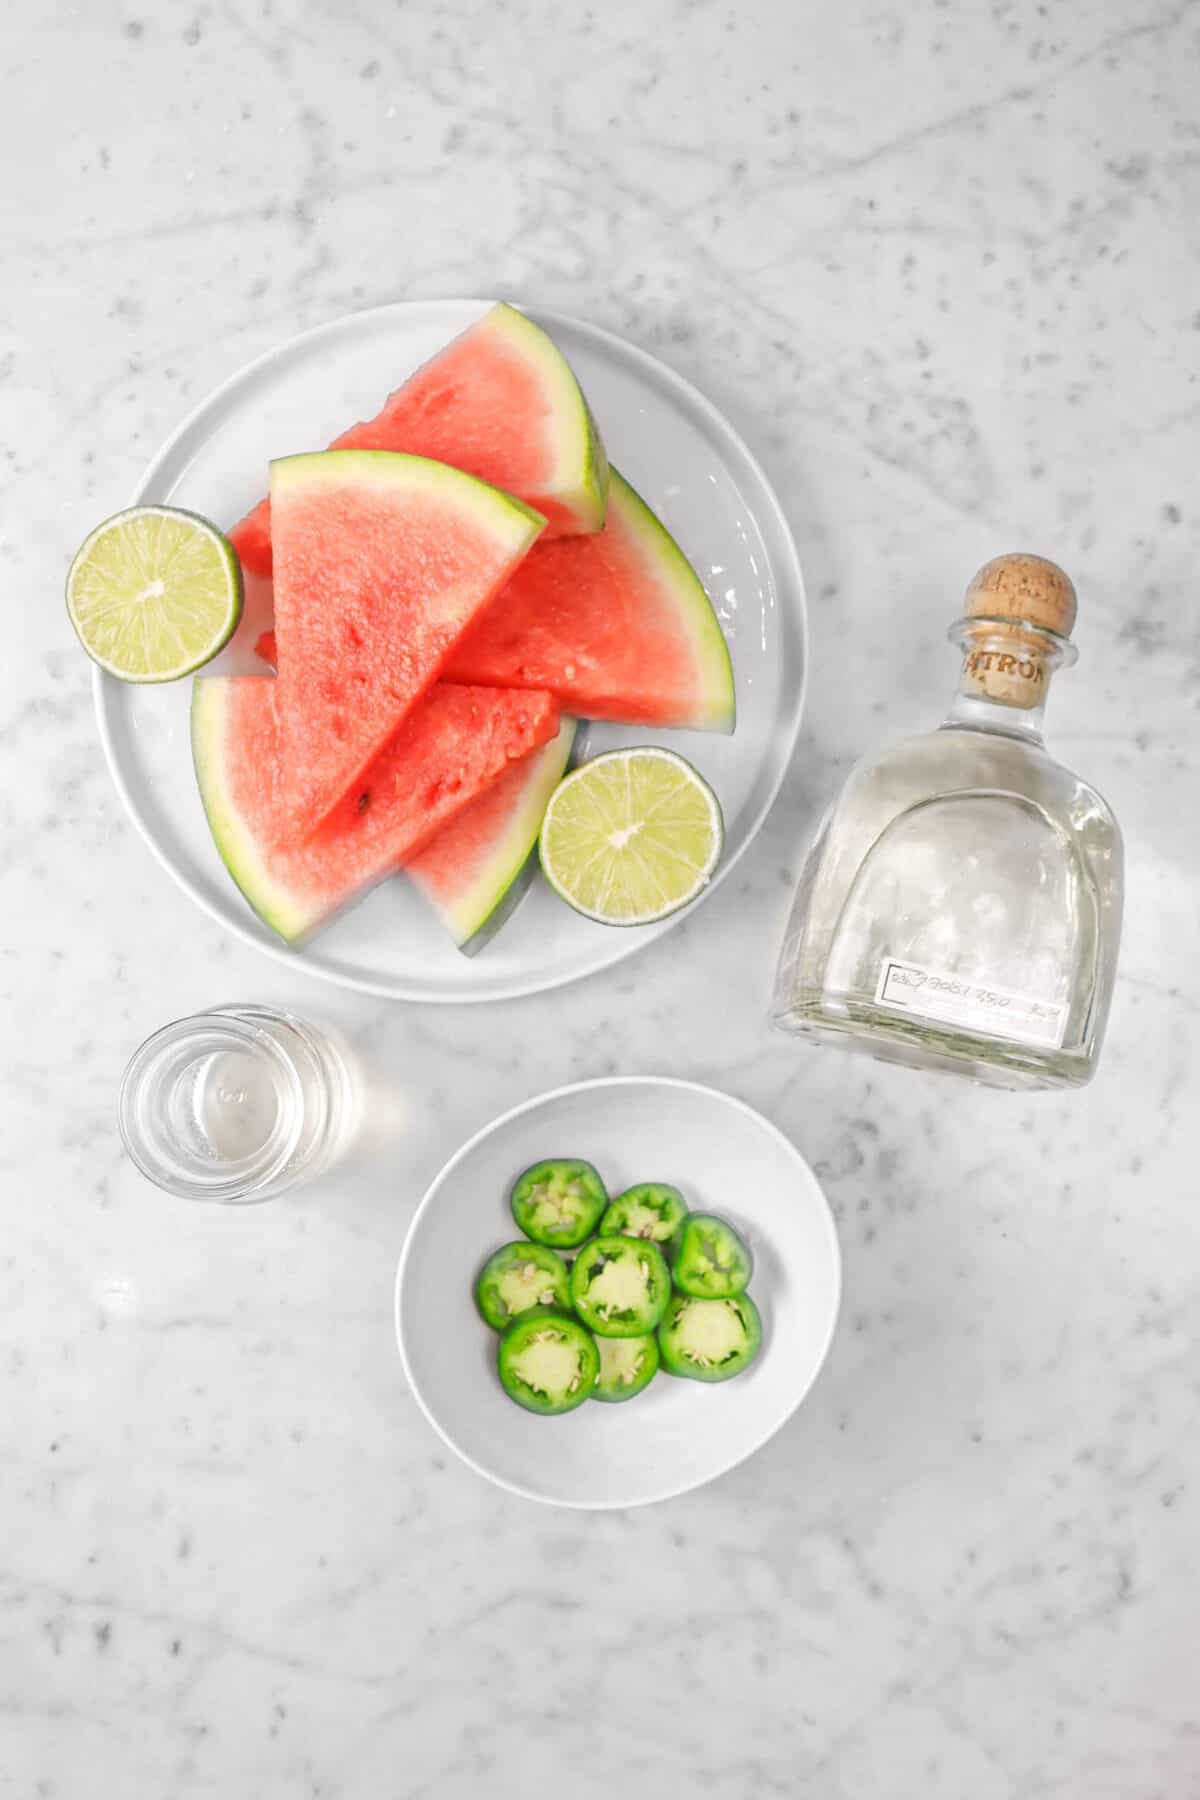 watermelon slices, lime, jalapeno slices, tequila, simple syrup